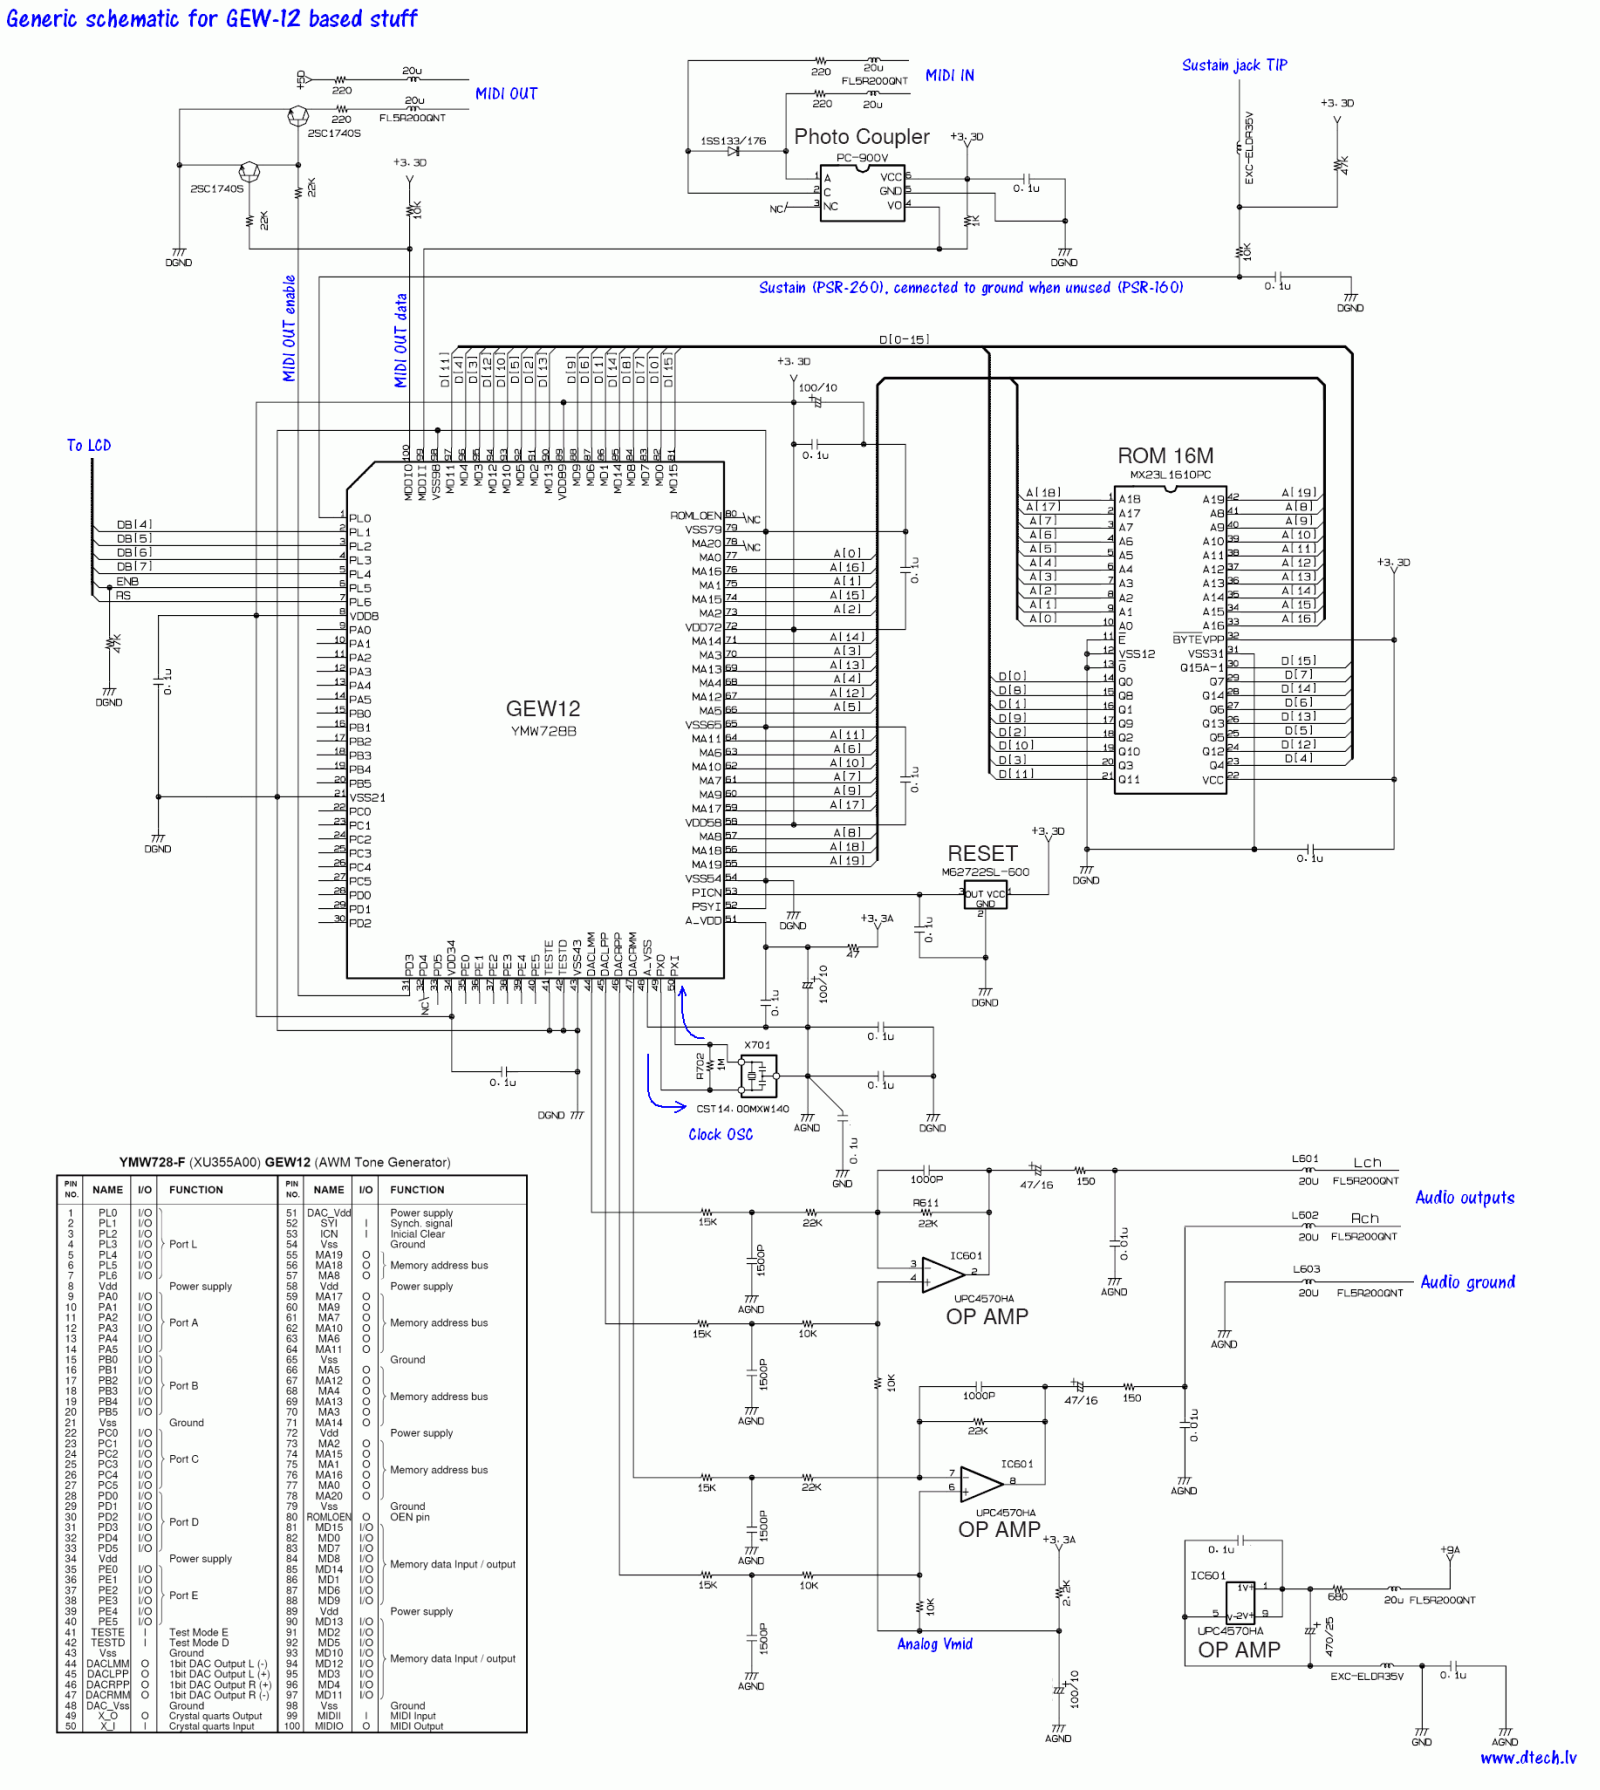 ymw728f_GEW12_generic_schematic_PSR160_PSR170_PSR270 edward d tech website music yamaha schematic diagram at nearapp.co